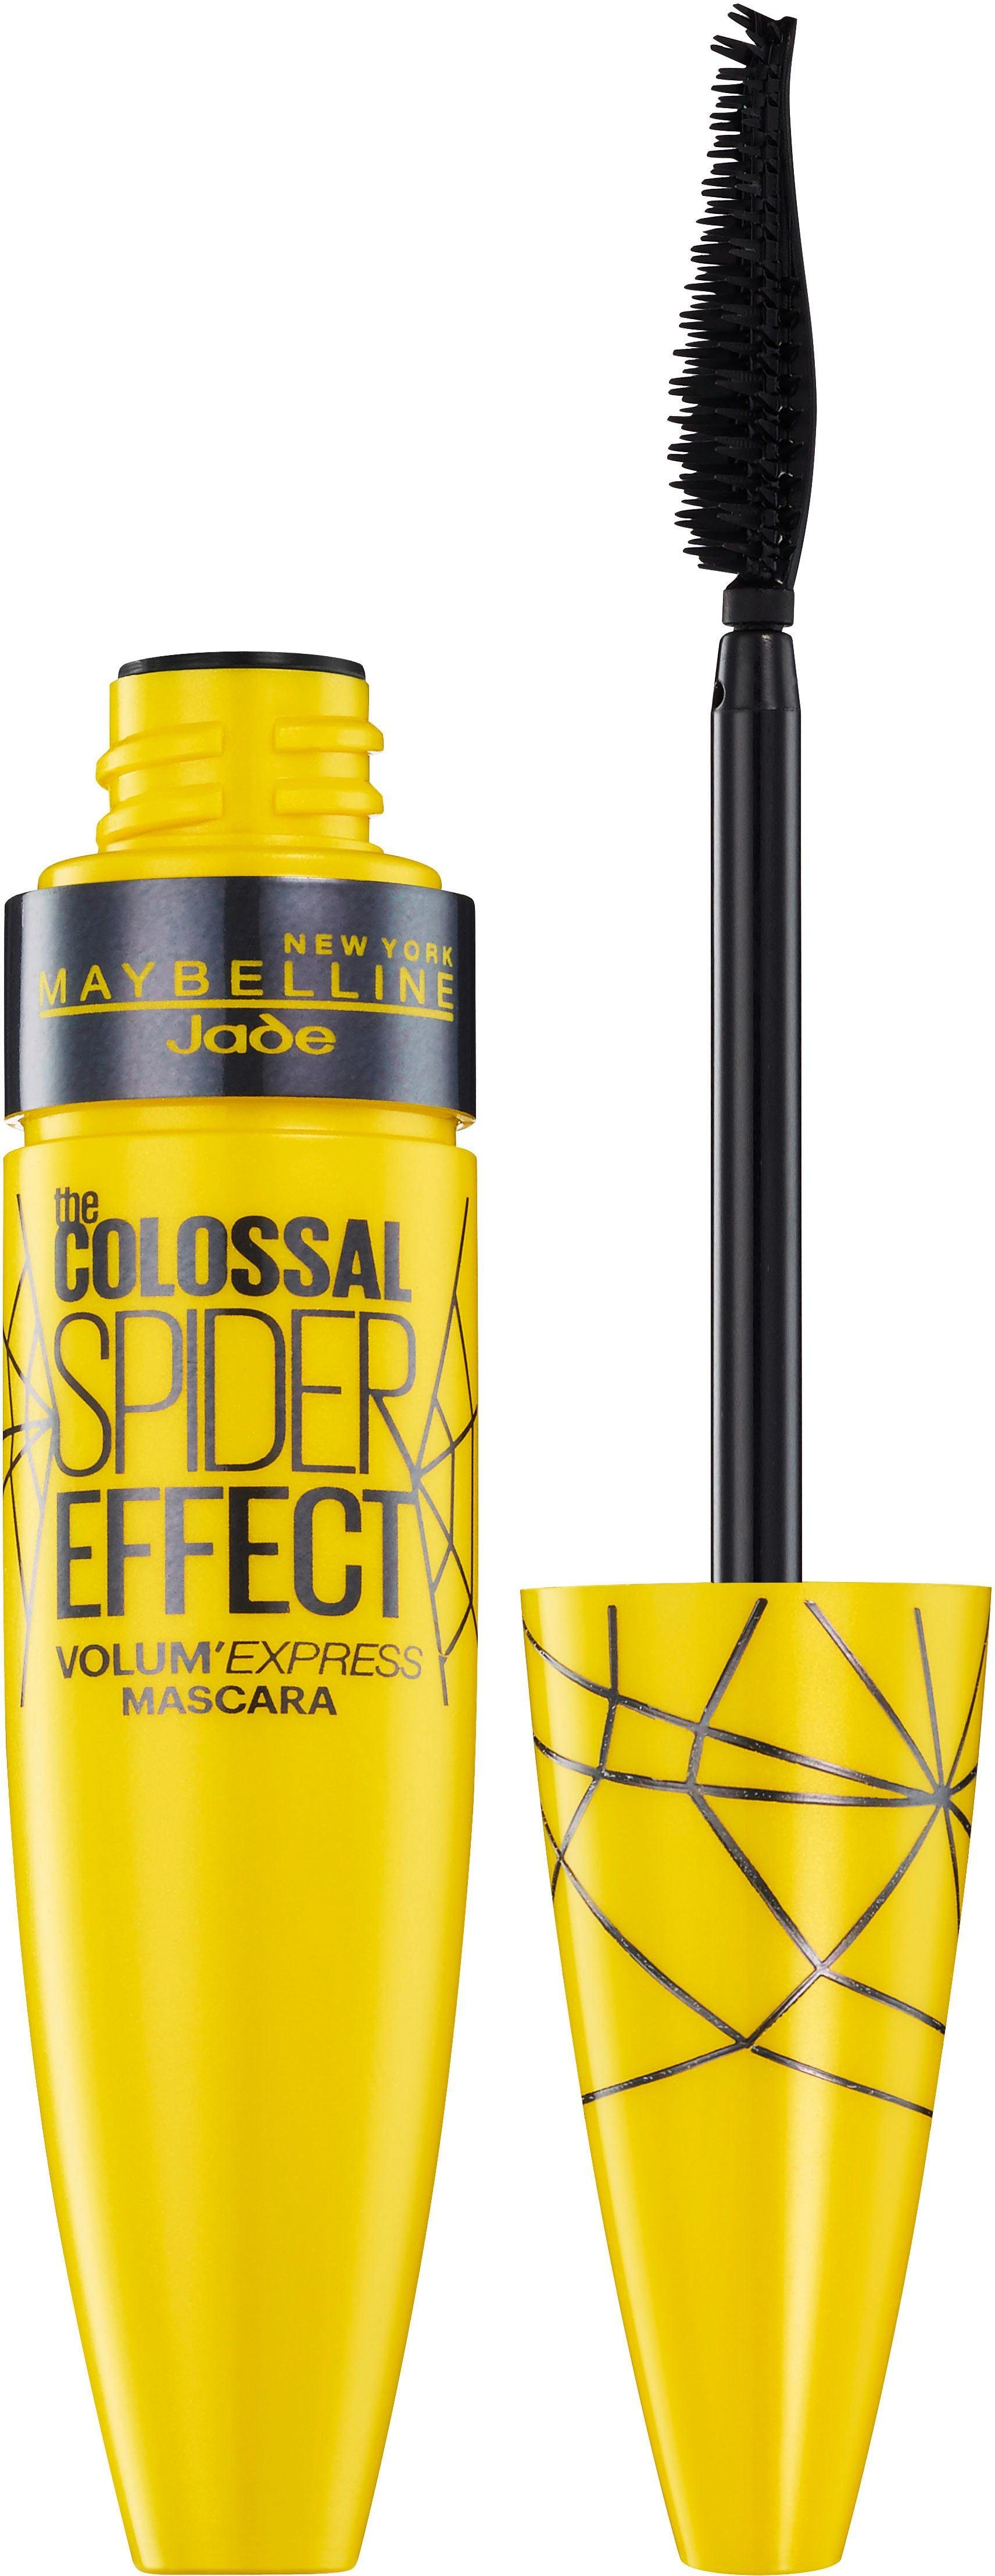 Maybelline New York, »Mascara VEX Colosal Spider Effect«, Mascara